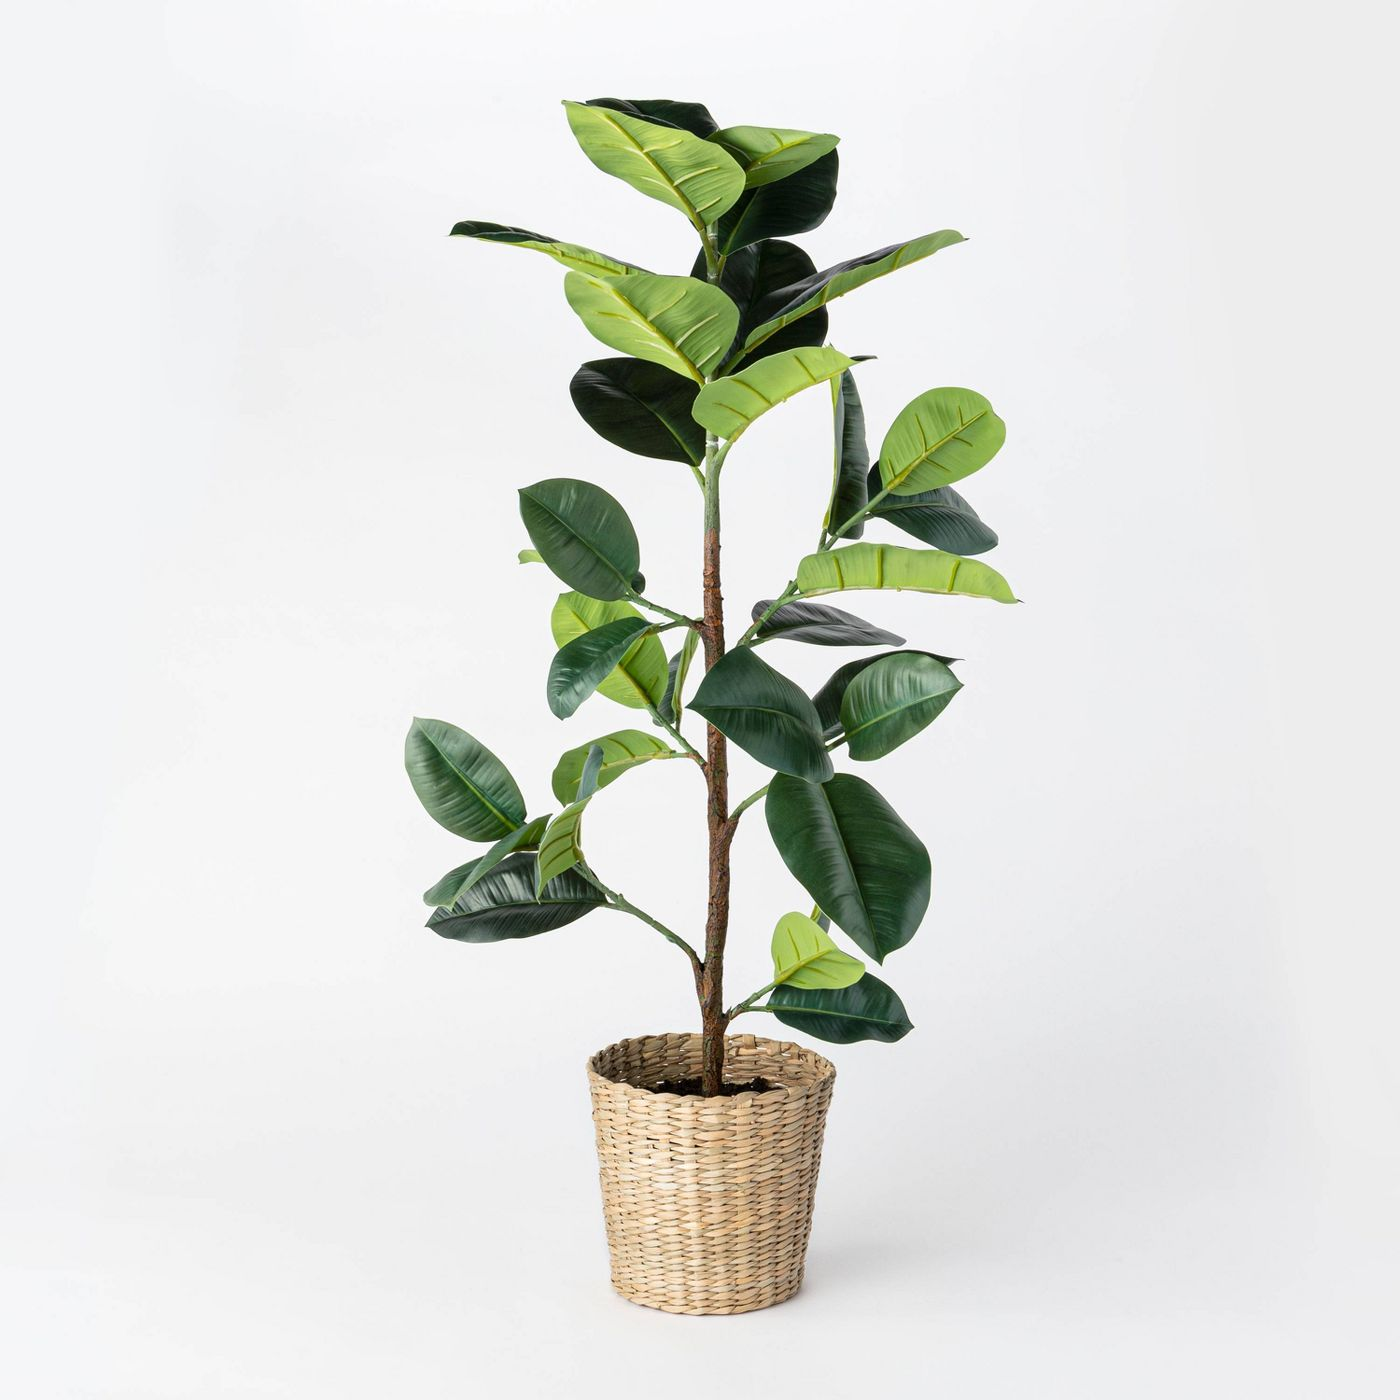 Artificial Rubber Leaf Tree in Pot Green - Threshold™ designed with Studio McGee - image 1 of 10